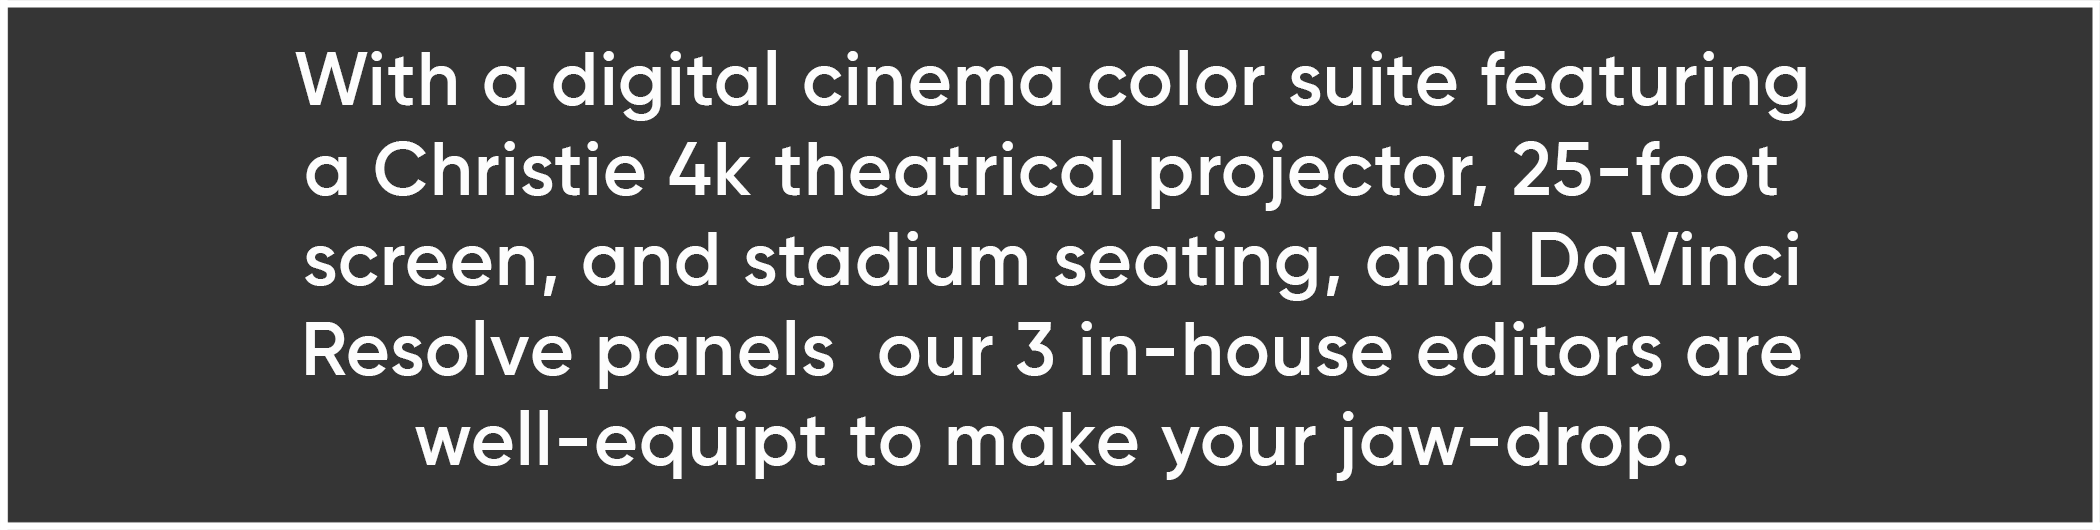 With a digital cinema color suite featuring a Christie 4k theatrical projector, 25-foot  screen, and stadium seating, and DaVinci Resolve panels  our 3 in-house editors are well-equipt to make your jaw-drop.